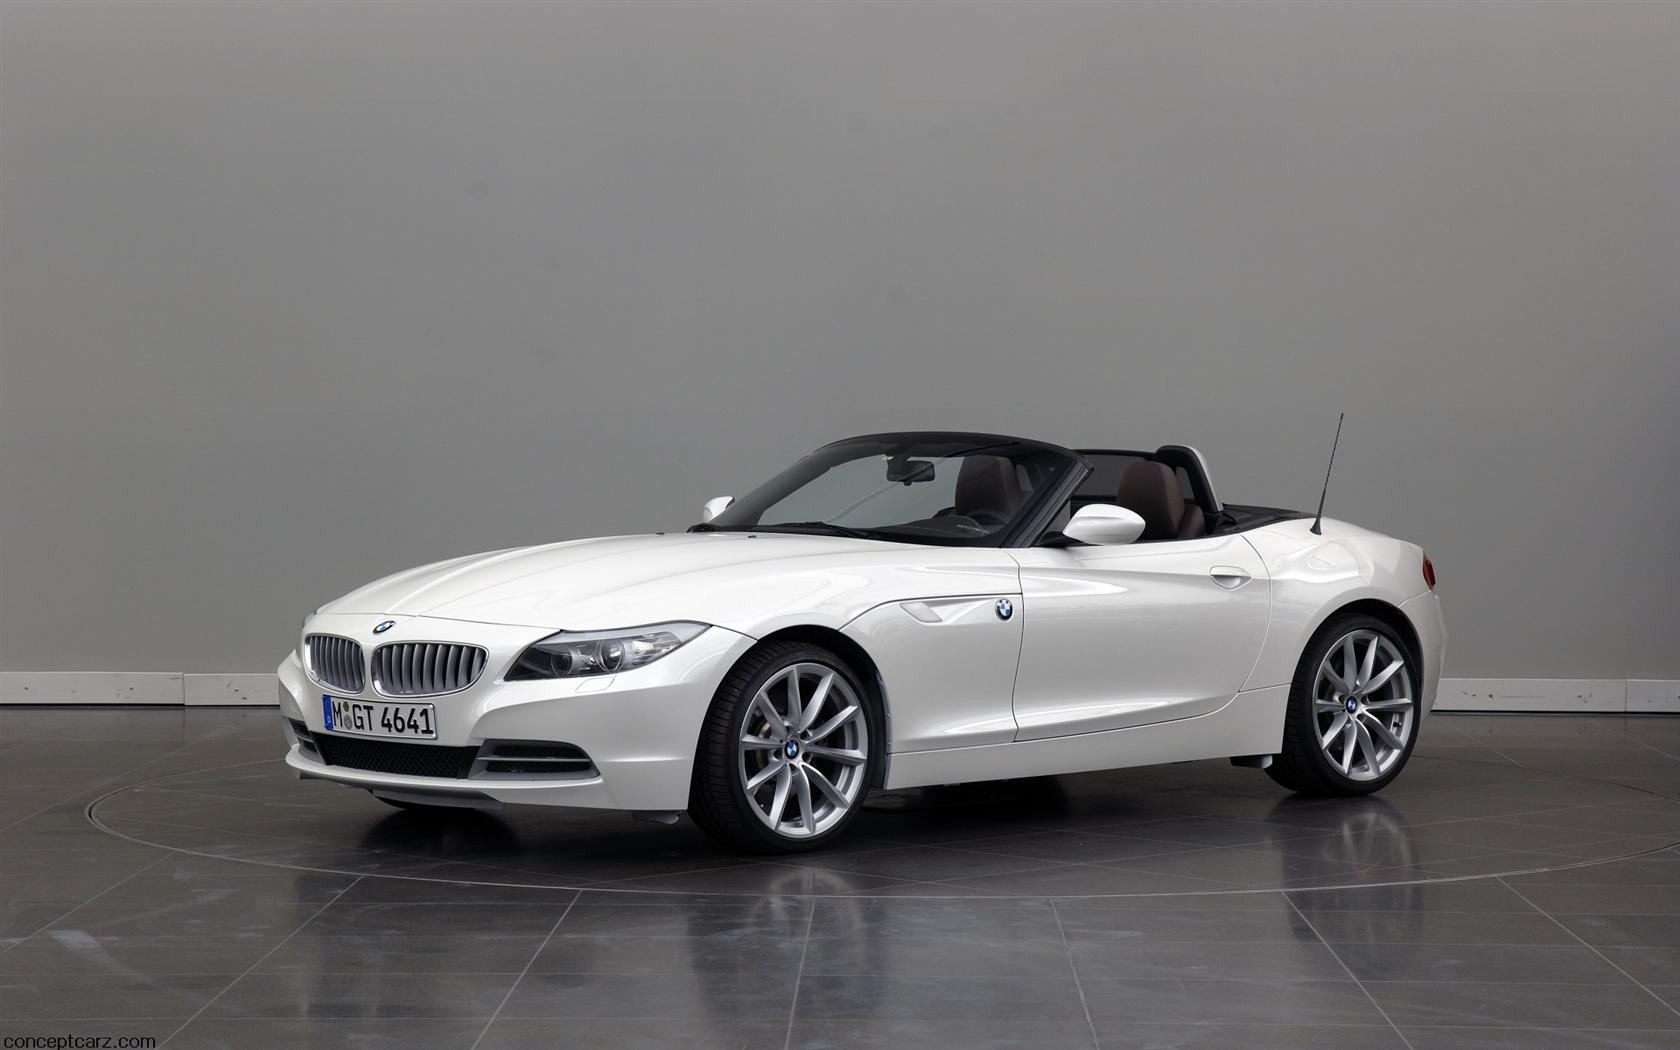 2011 Bmw Z4 Design Pure Balance Package Image Photo 2 Of 2